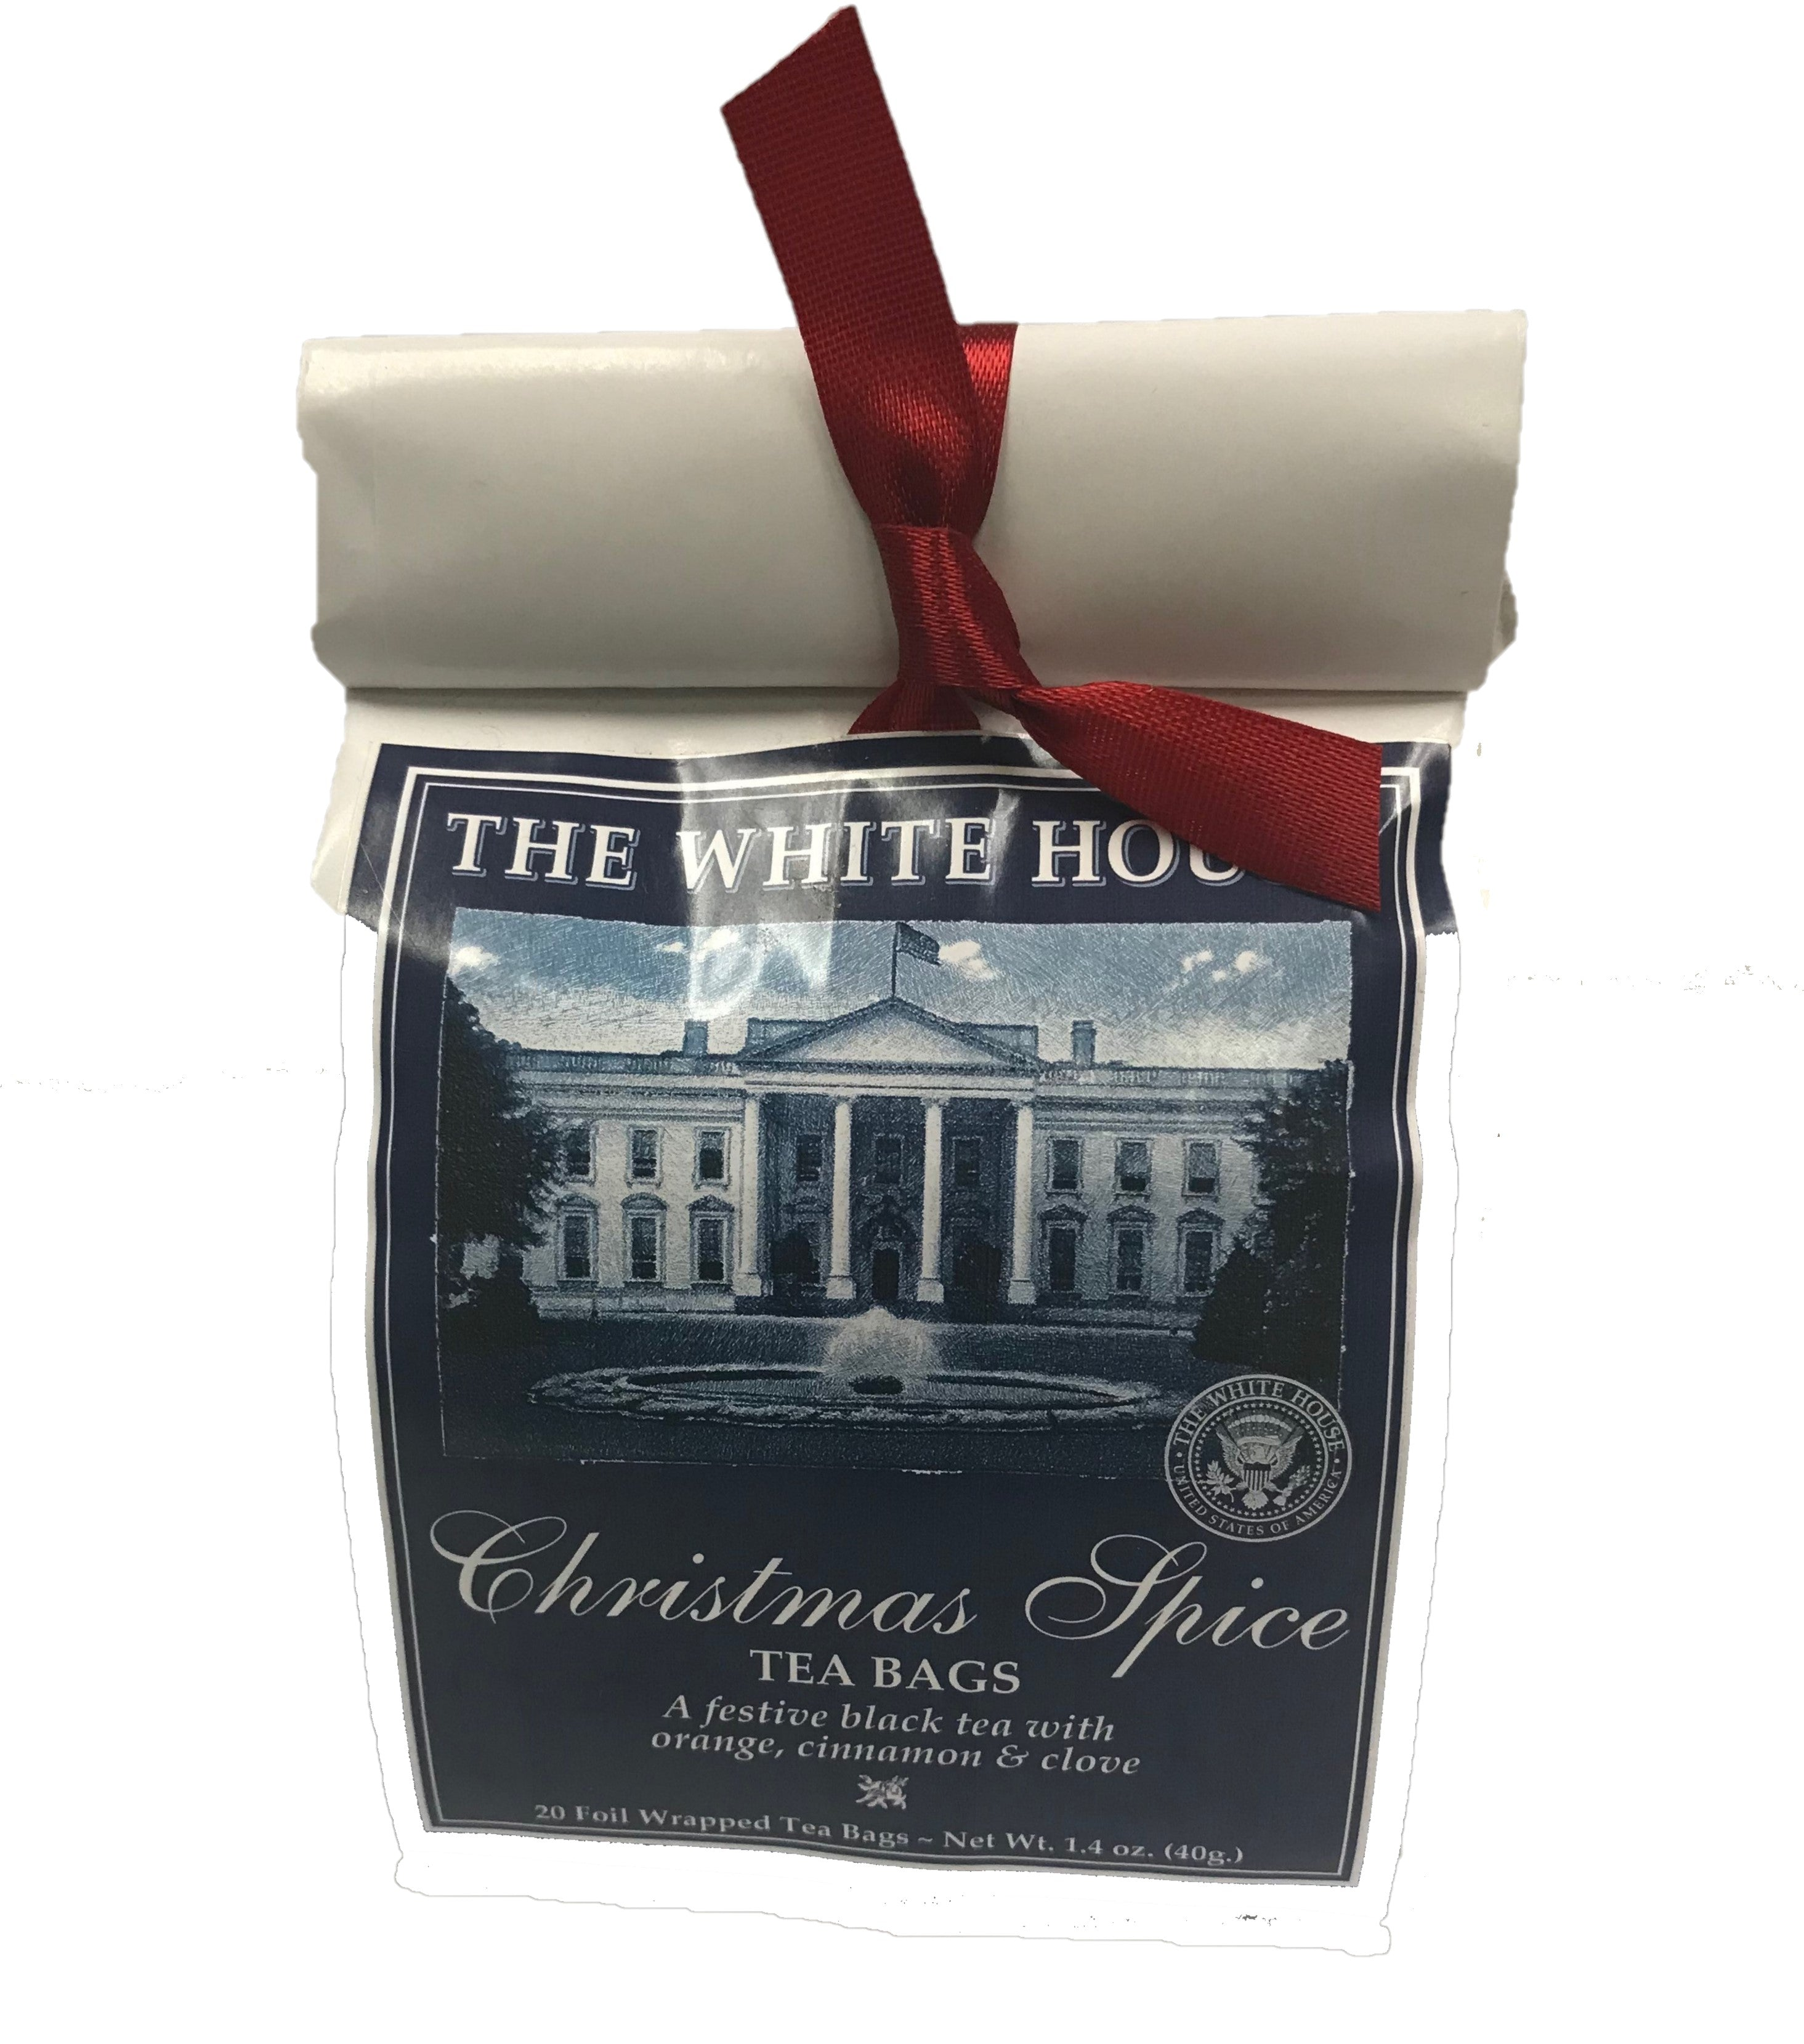 The White House Christmas Spice Tea Bags - White House Gifts